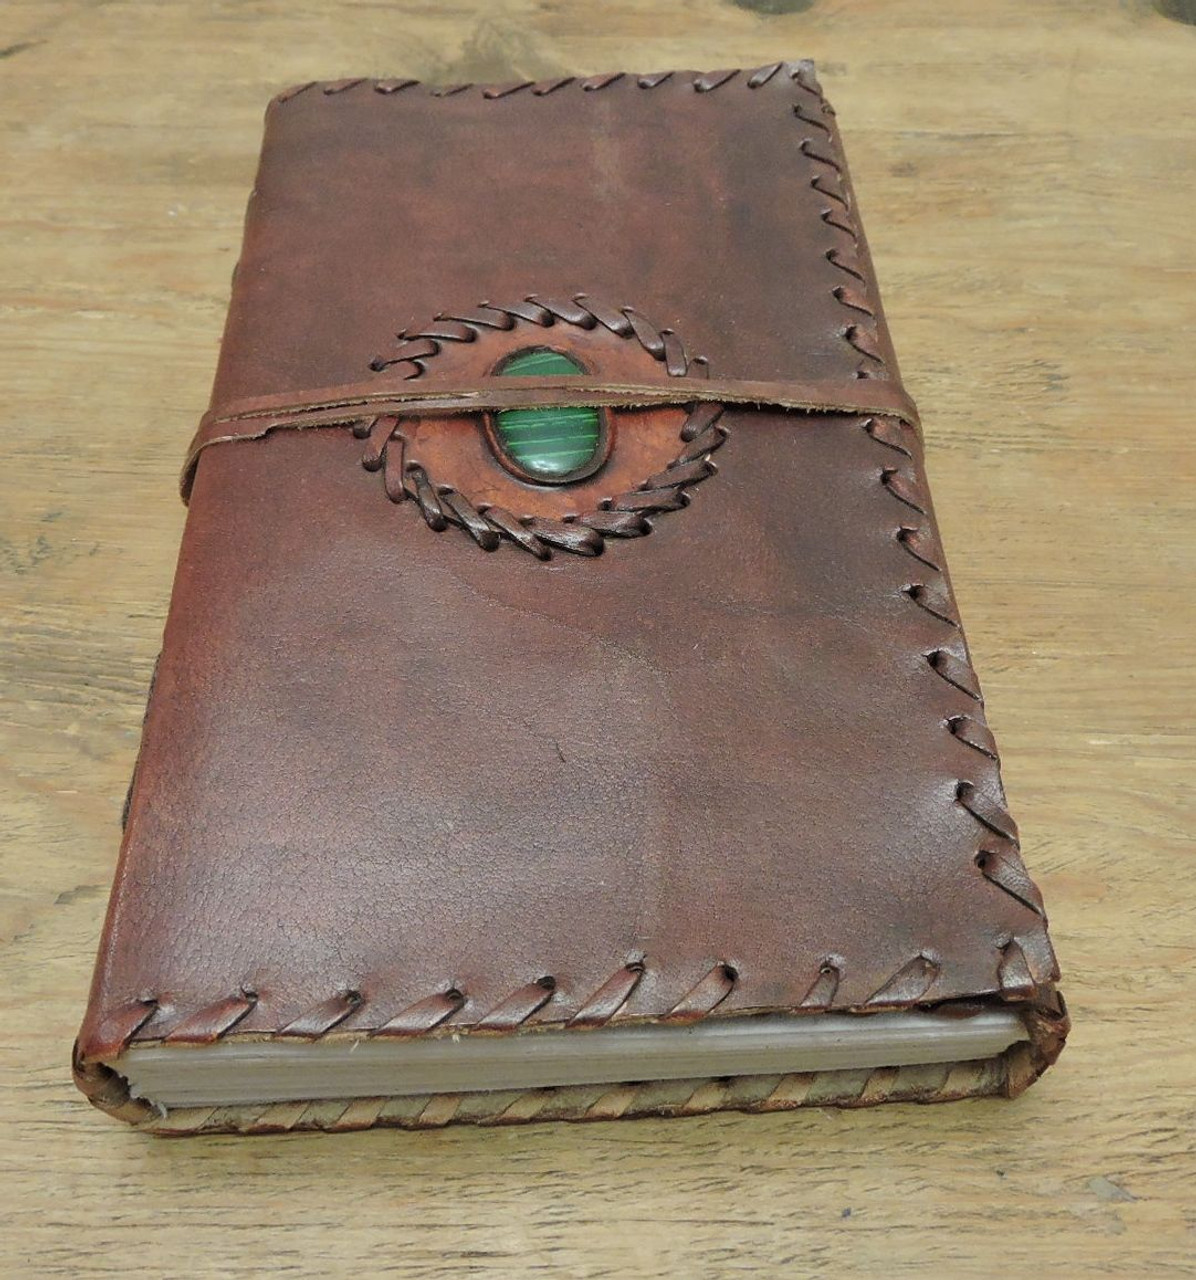 bottom view of handcrafted leather journal with semi precious stone and stitching